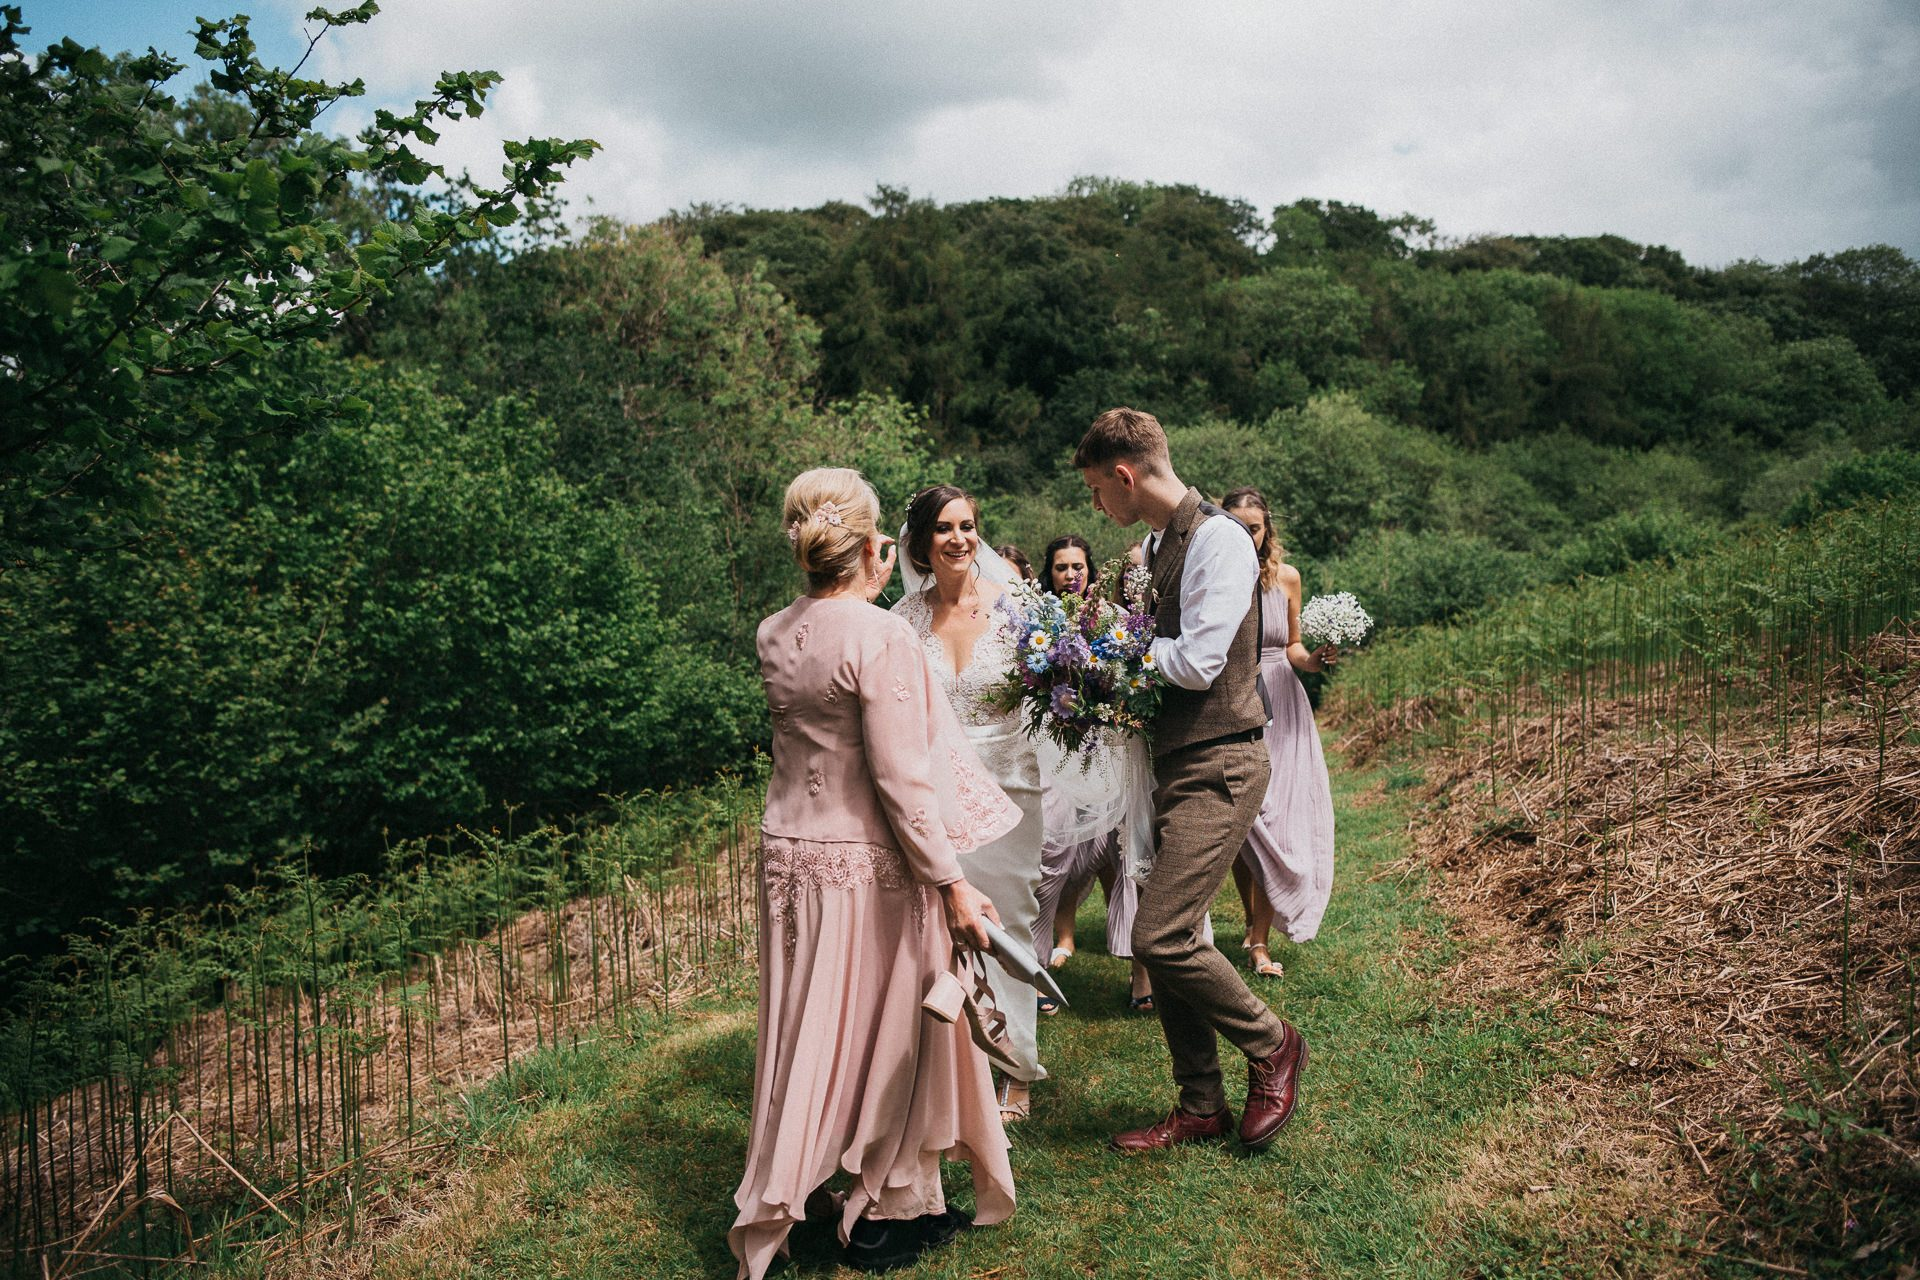 0066-DEVON-SOMERSET-WEDDING-PHOTOGRAPHER-0297-BEST-OF-2019-LOUISE-MAY-DEVON-SOMERSET-WEDDING-PHOTOGRAPHY-LM2_8804